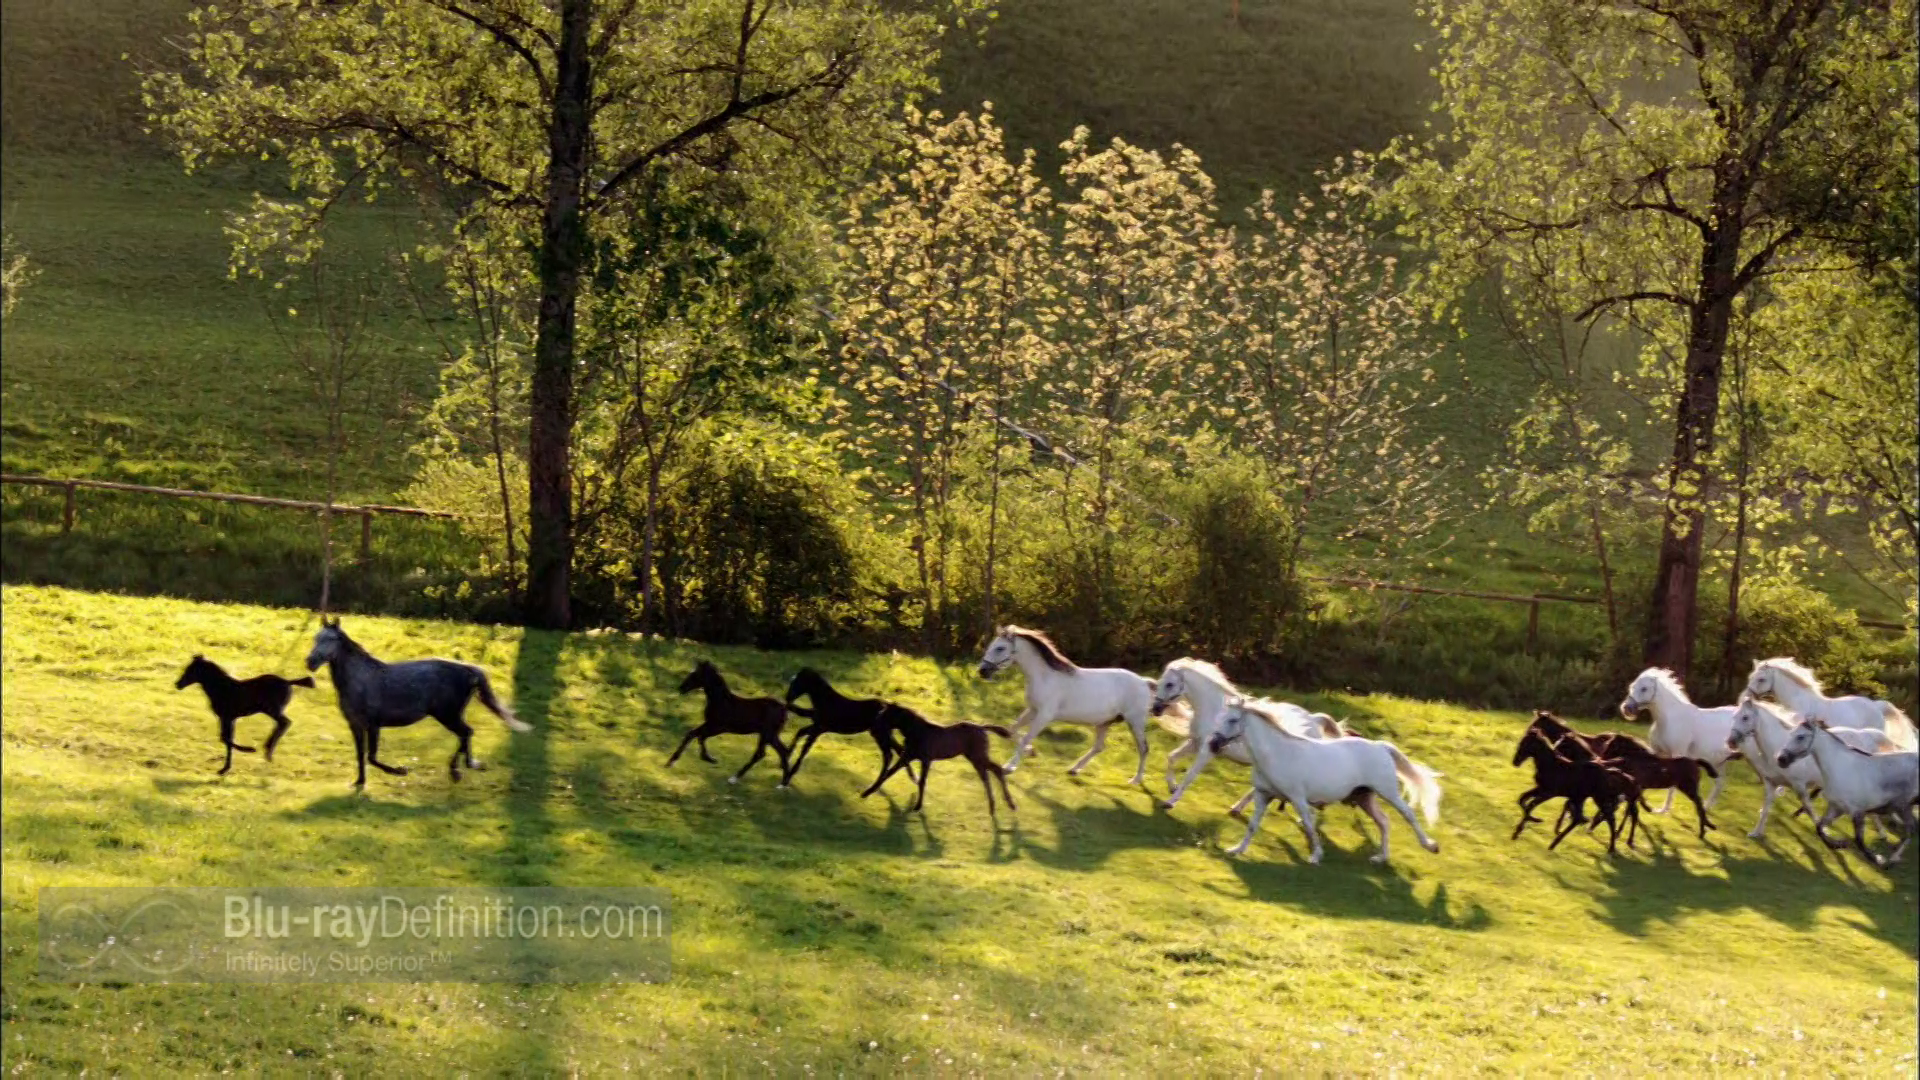 Purchase Nature: Legendary White Stallions on Blu-ray at CD Universe